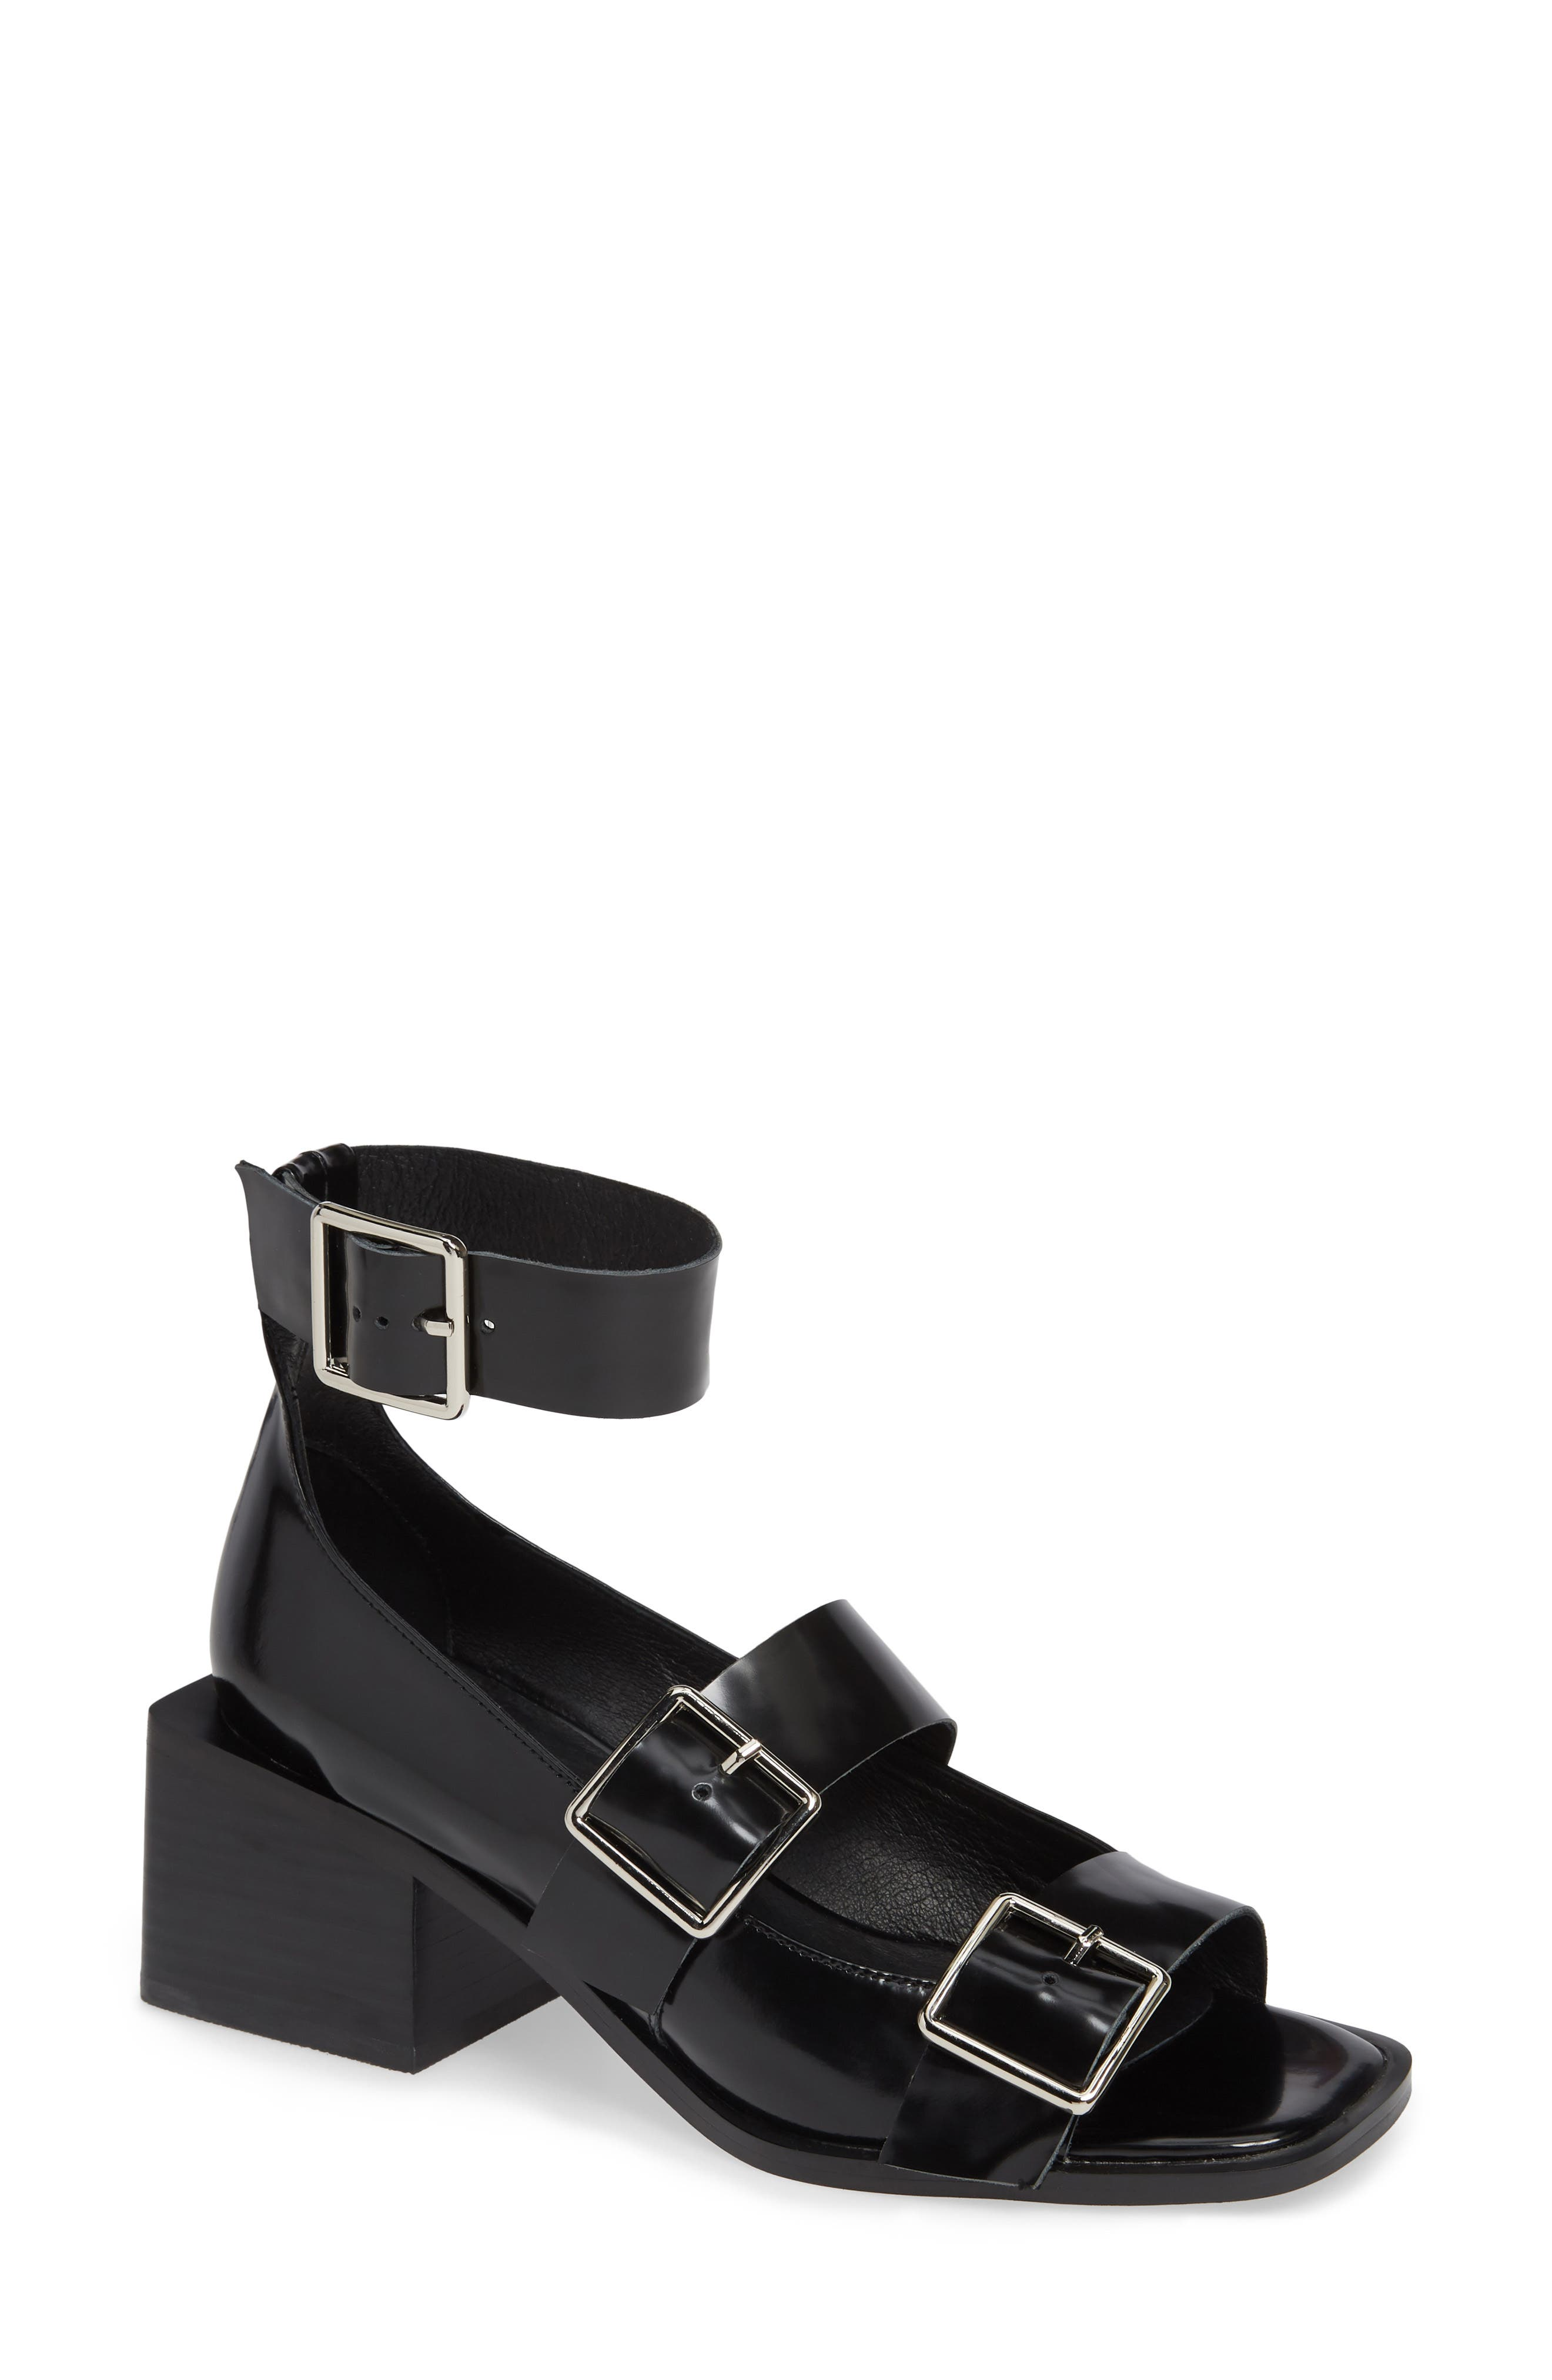 Aspinal Ankle Strap Sandal,                             Main thumbnail 1, color,                             BLACK LEATHER